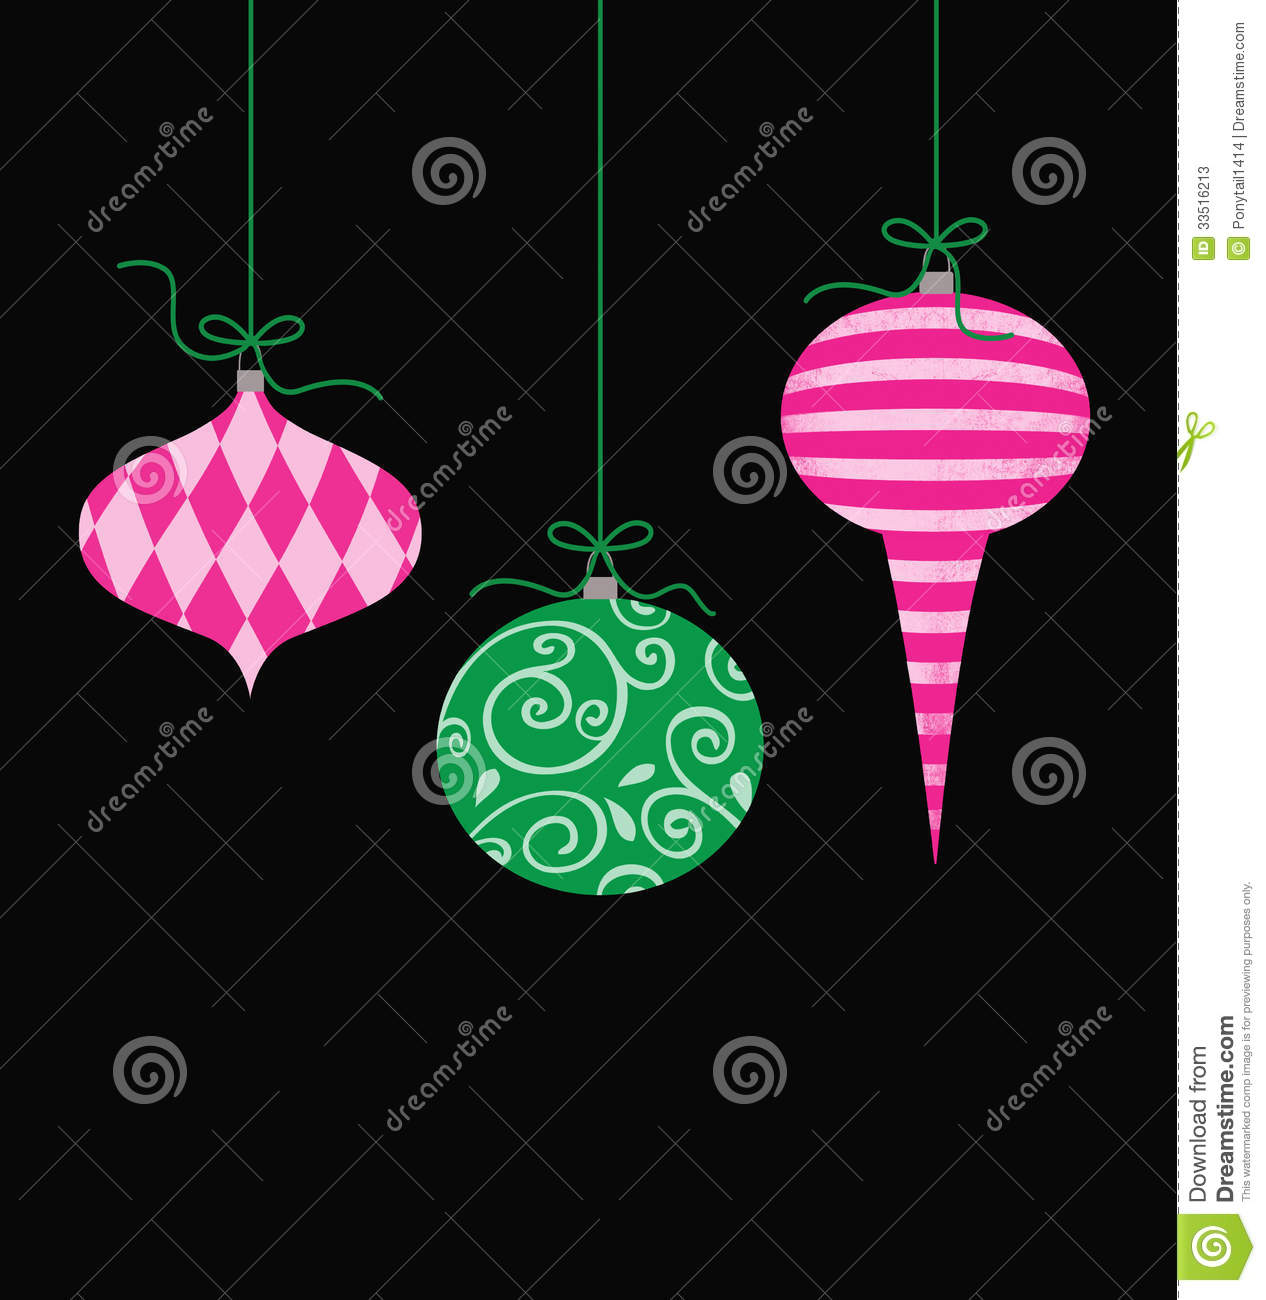 Whimsical Hanging Christmas Ornaments Stock Photos - Image: 33516213